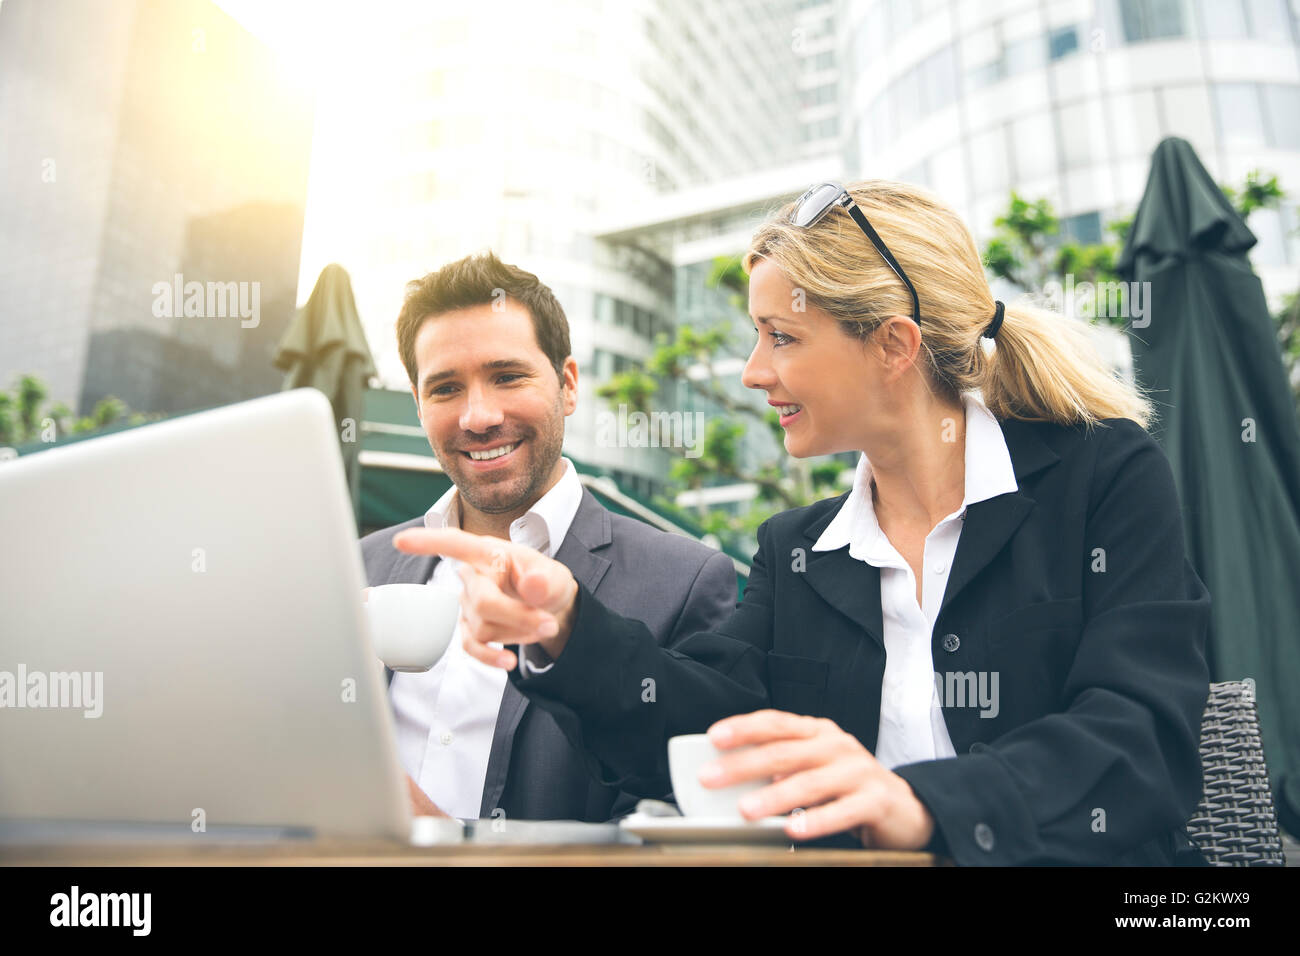 Business people meeting for a coffee break - Stock Image